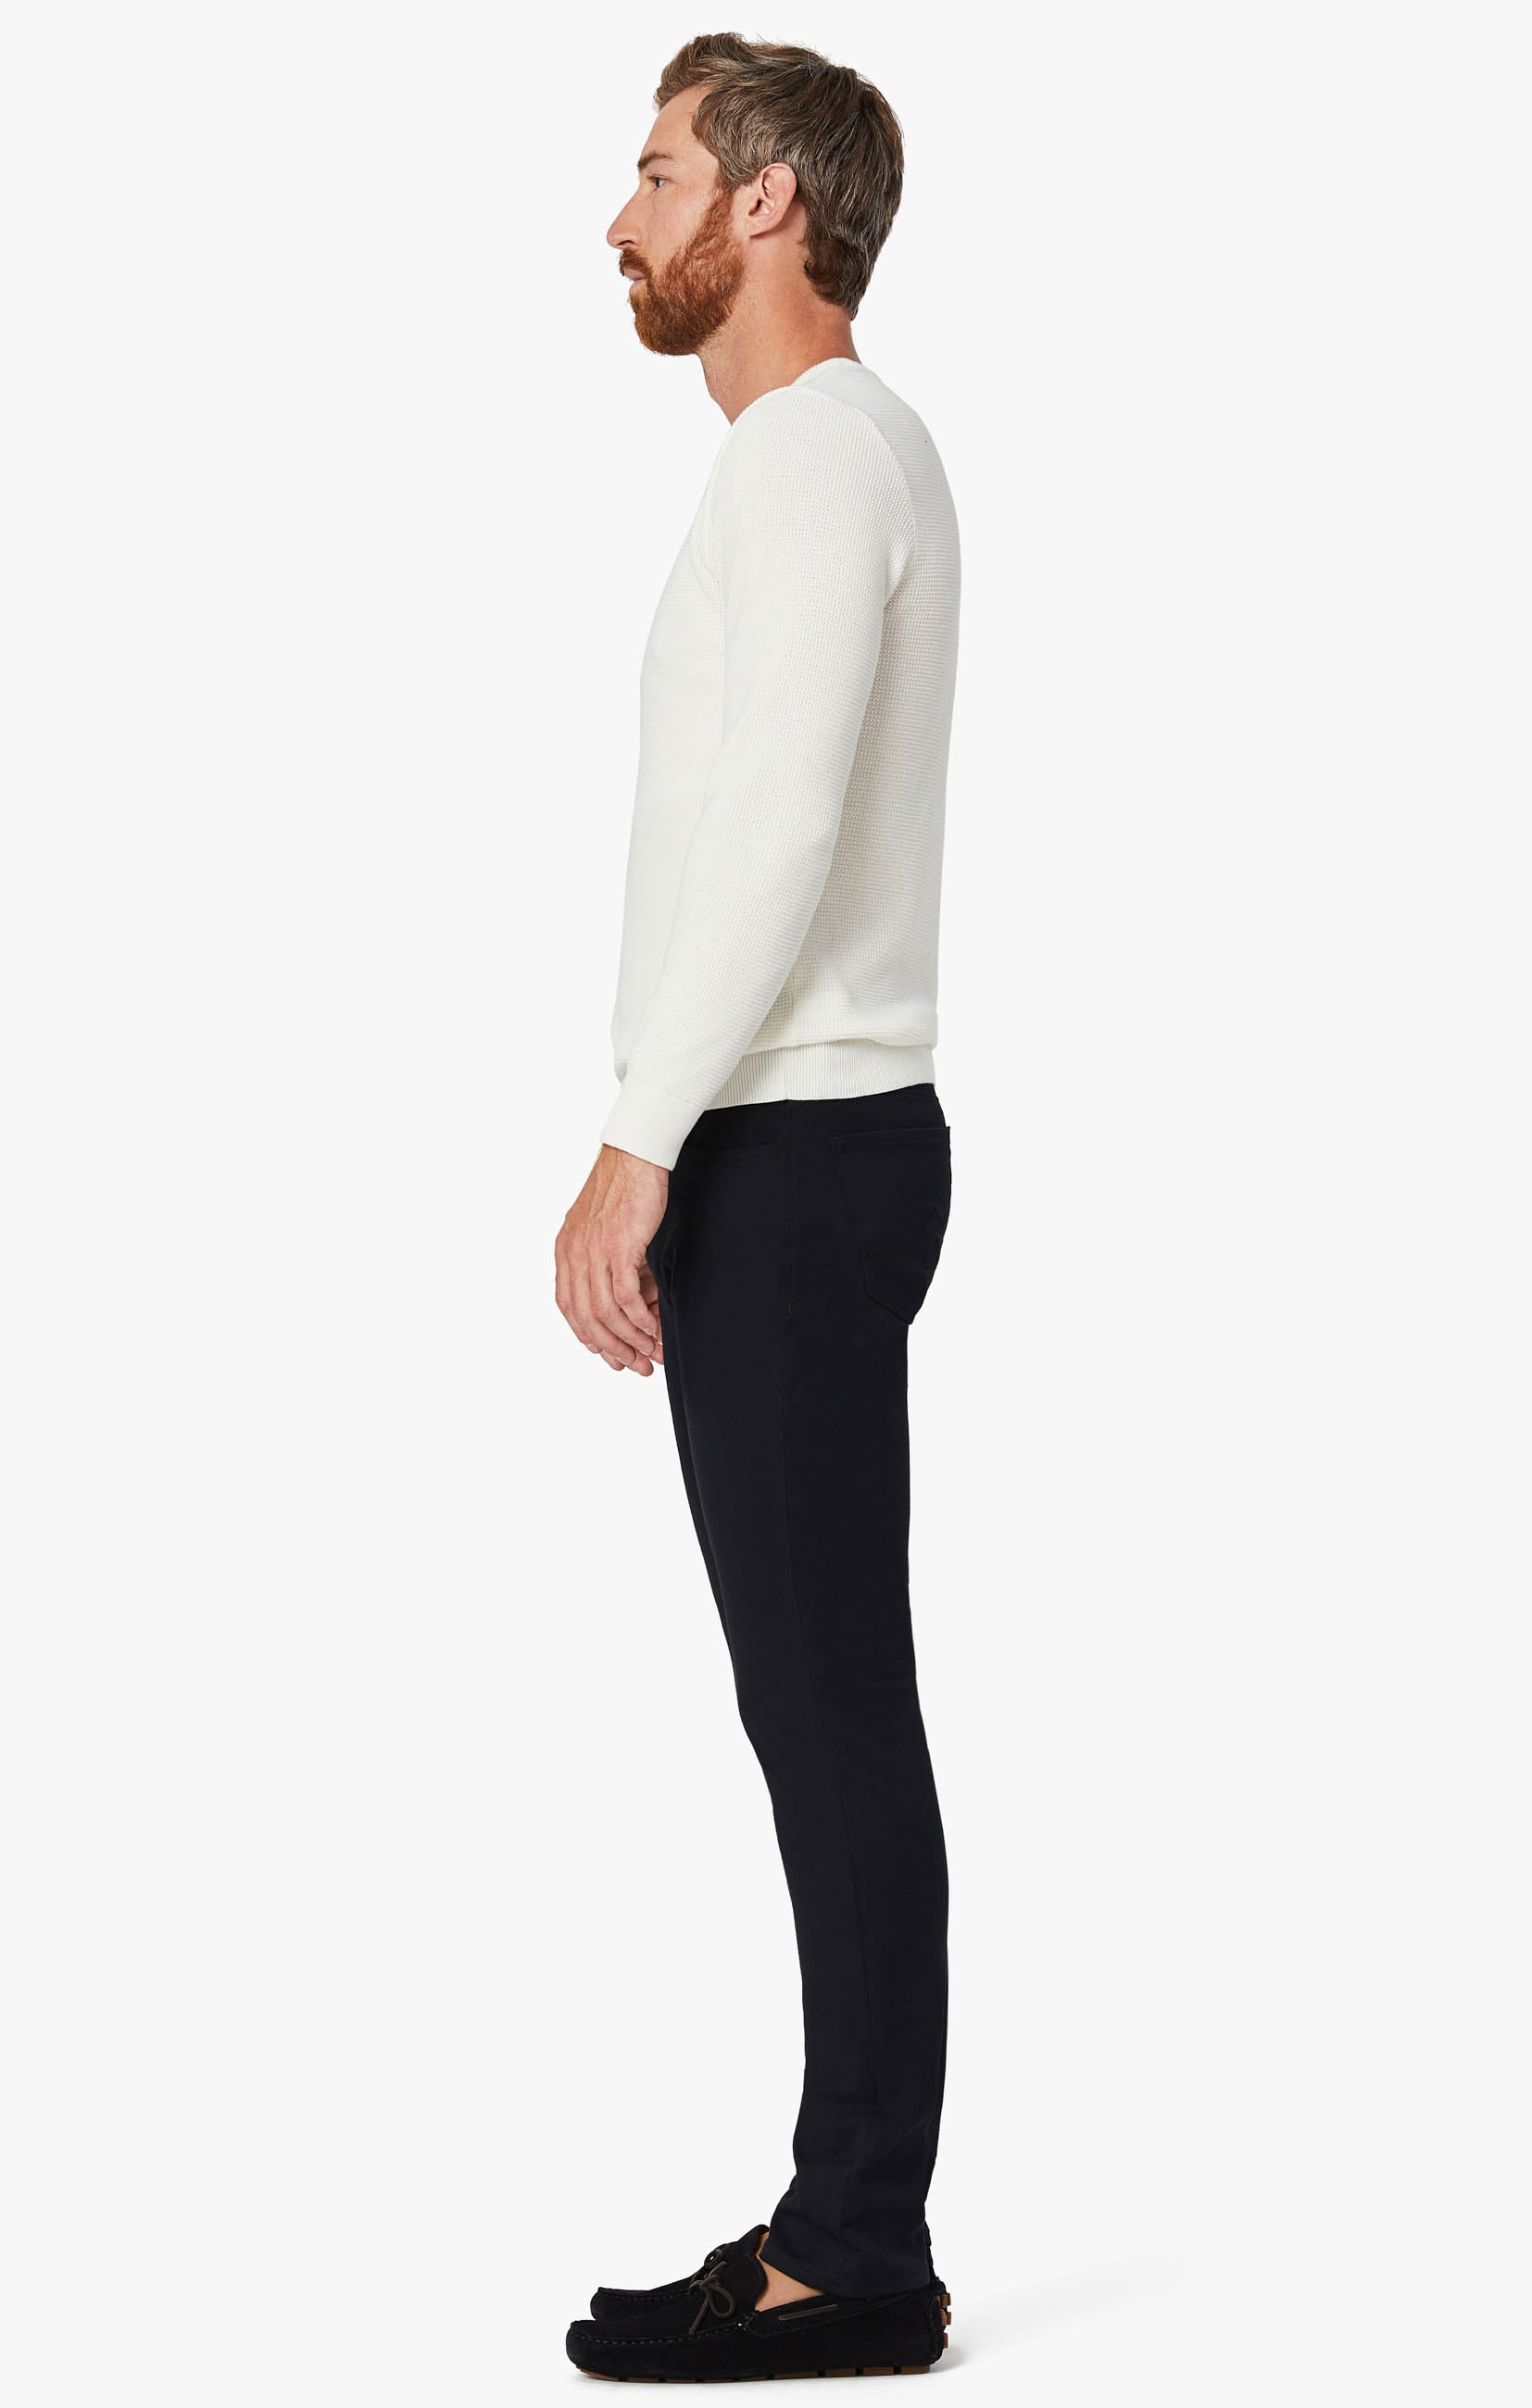 Charisma Classic Fit Pants in Navy Winter Cashmere Image 3